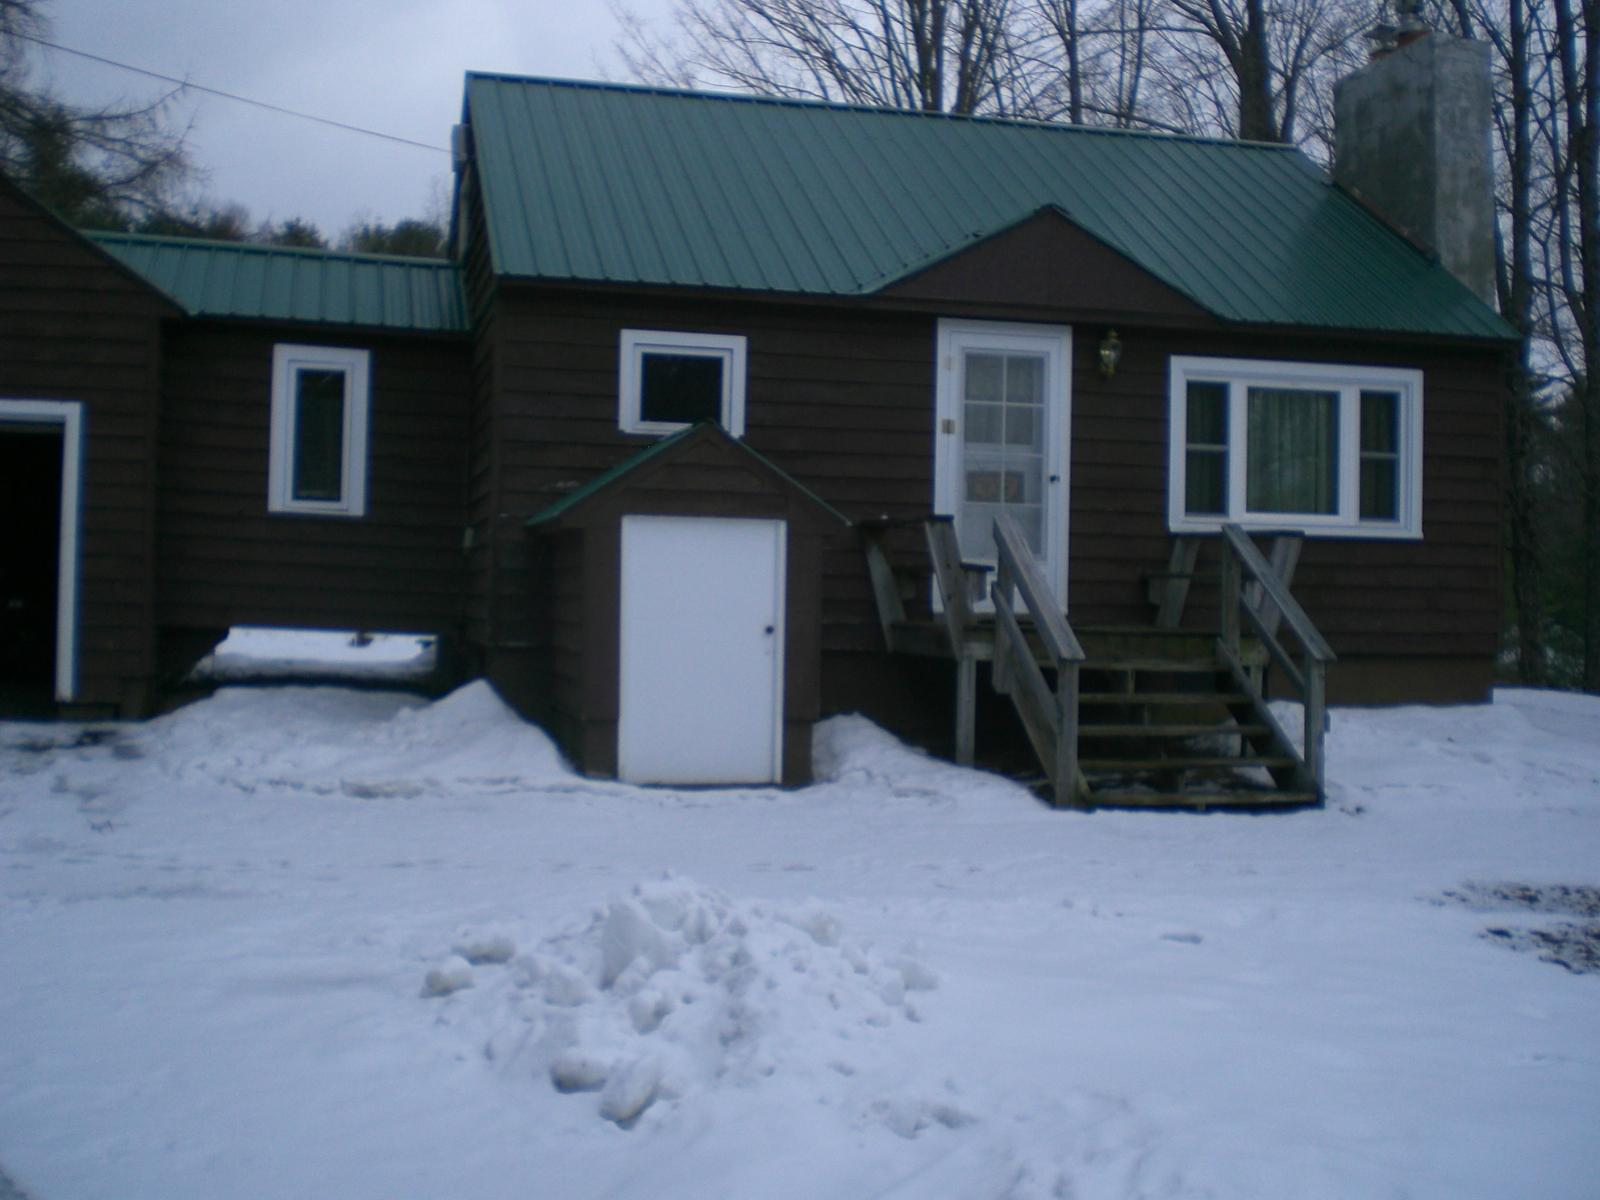 Adirondack Pines B&B and Vacation Rentals